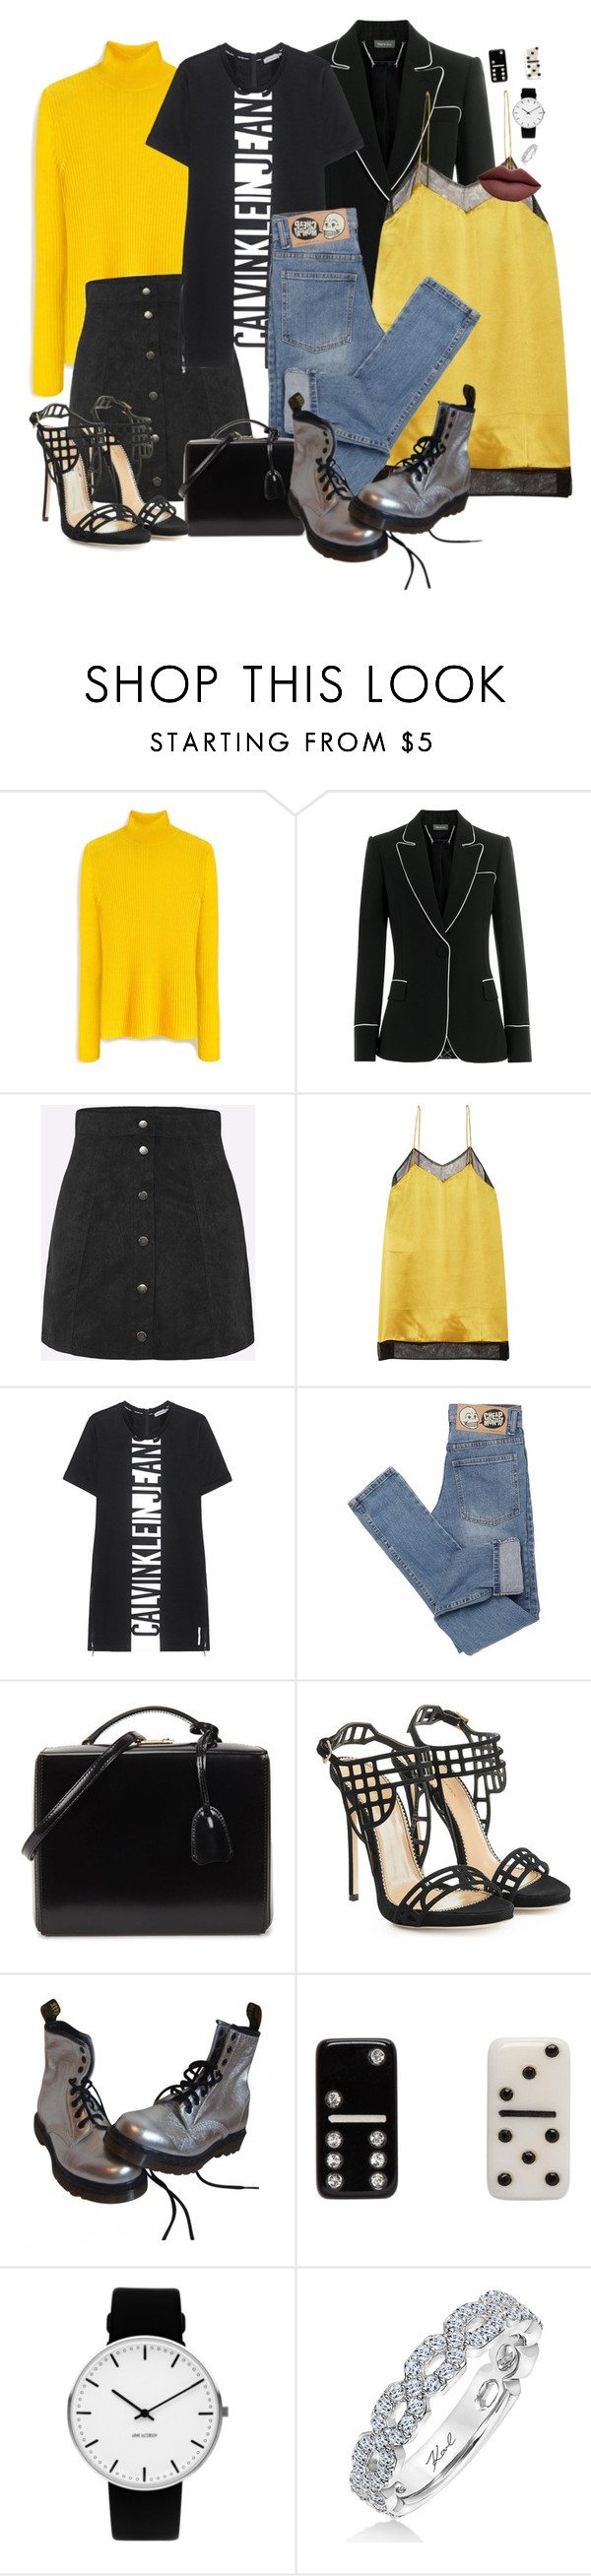 """""""Three Day Weekend"""" by chelsofly ❤ liked on Polyvore featuring Mulberry, Alexander McQueen, Gucci, Calvin Klein Jeans, Cheap Monday, Mark Cross, Dsquared2, Dr. Martens, Marc Jacobs and Rosendahl"""